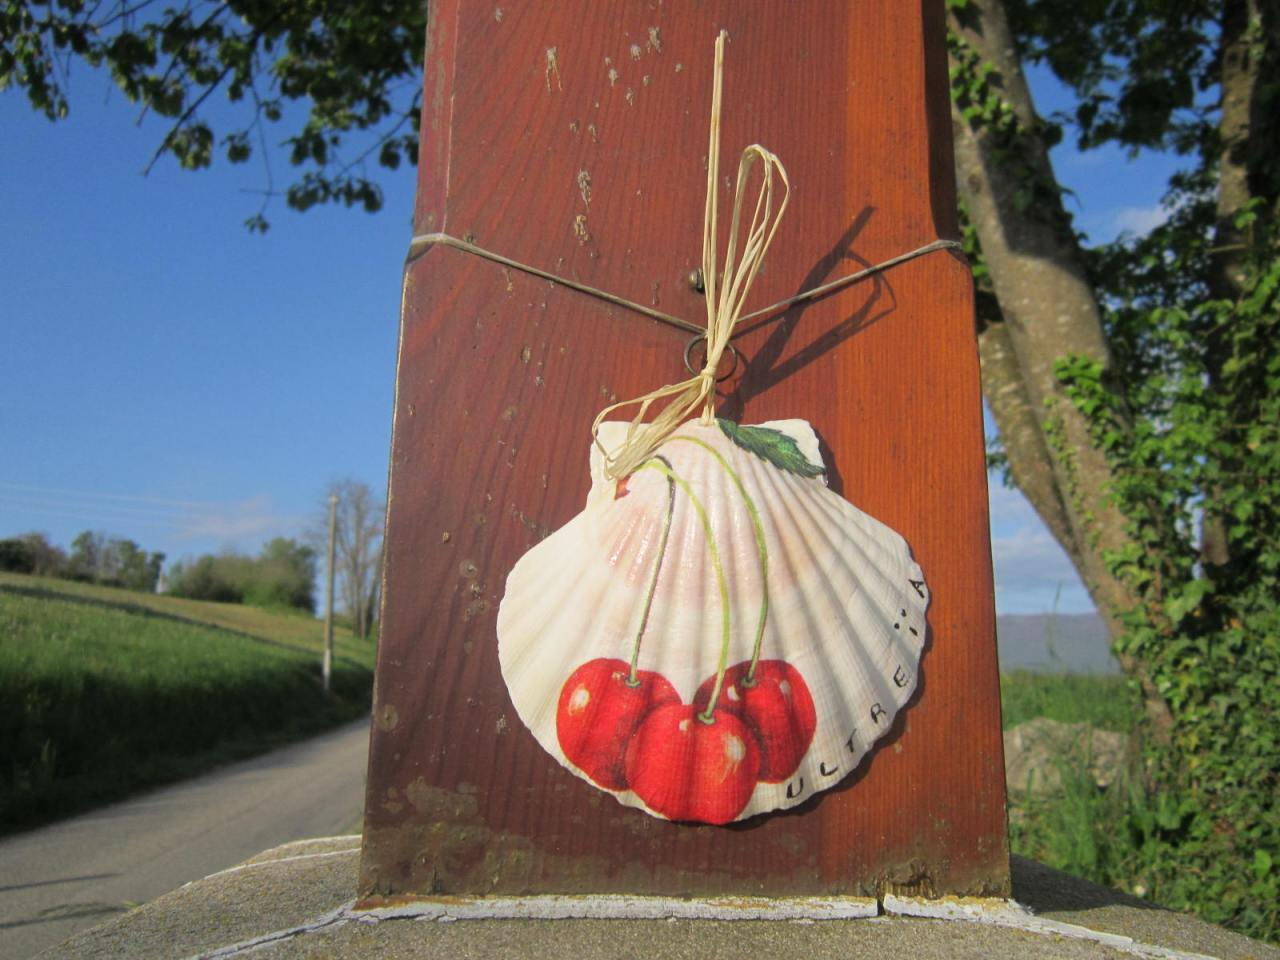 Painted Scallop shell on Geneva Way between Geneva and Le Puy